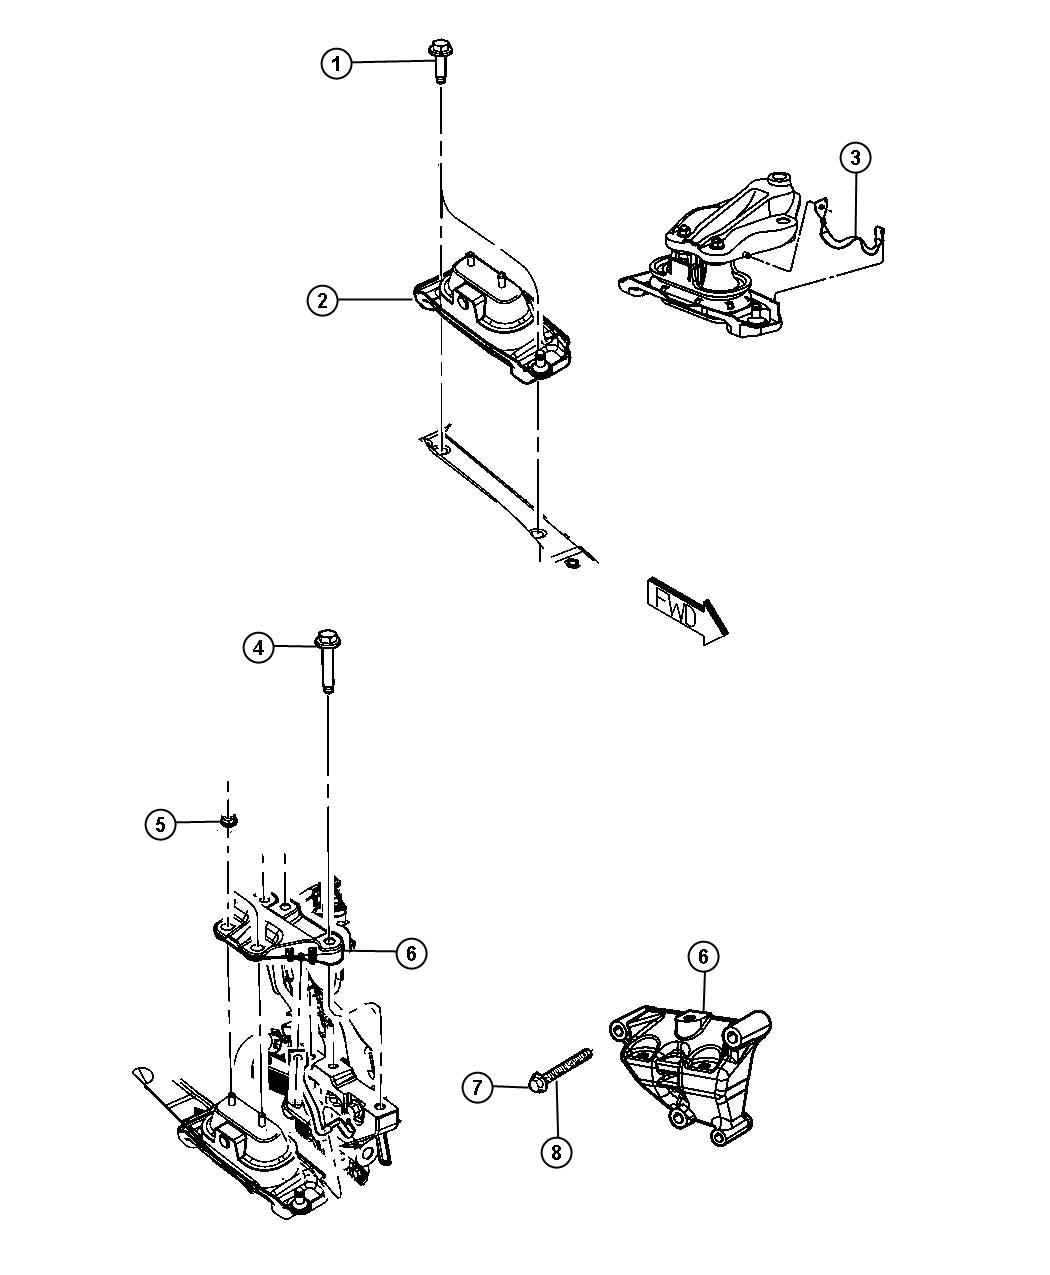 2008 volvo s40 rear suspension diagram